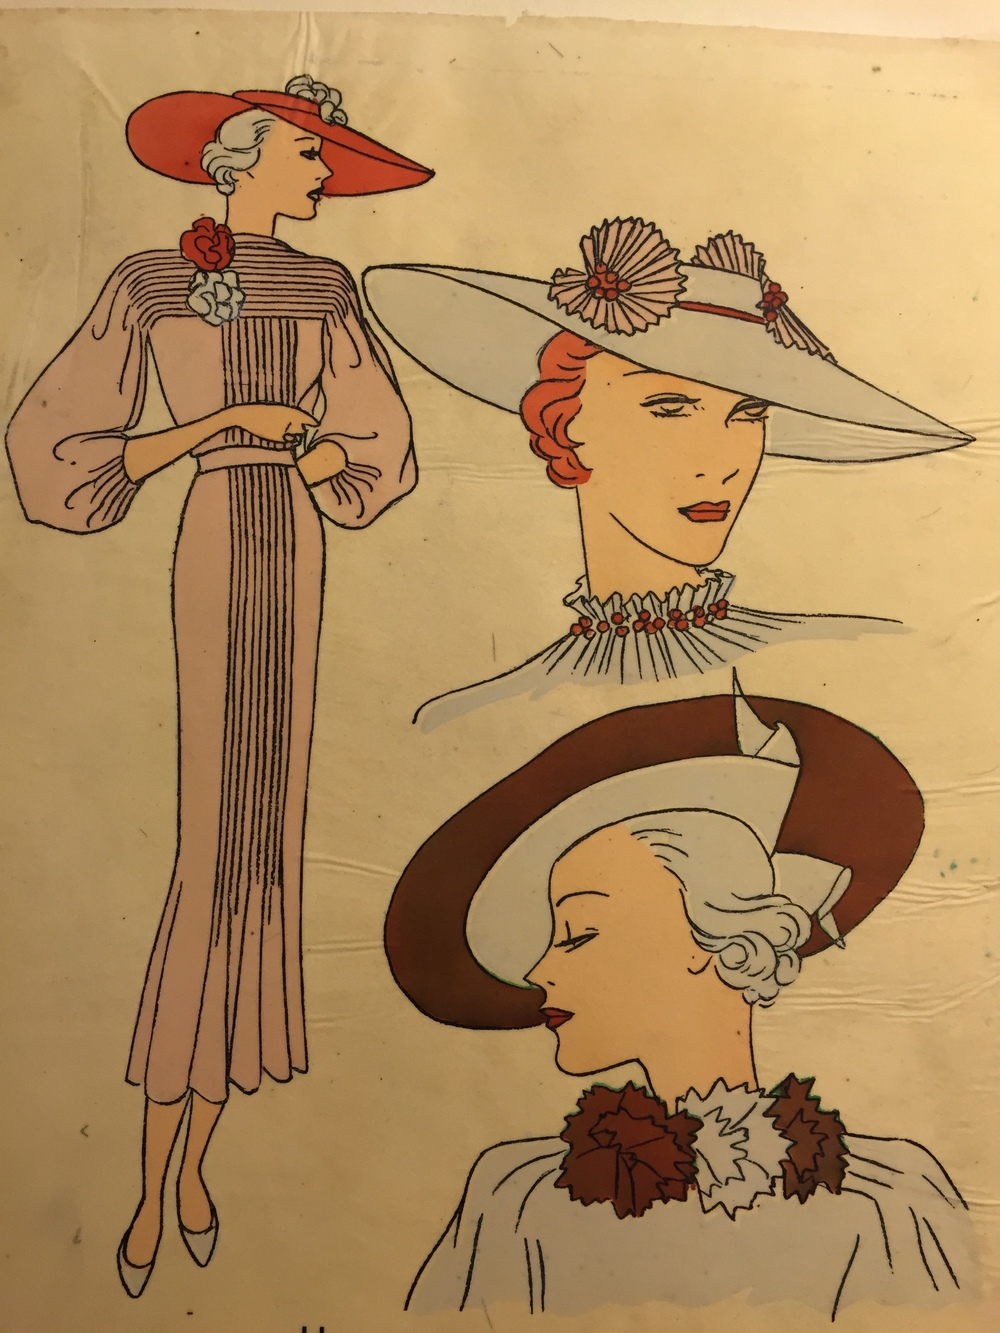 Tres Parisien 1935 - they started to add hats to promote their new hat periodical called Les Chapeaux du Tres Parisien.